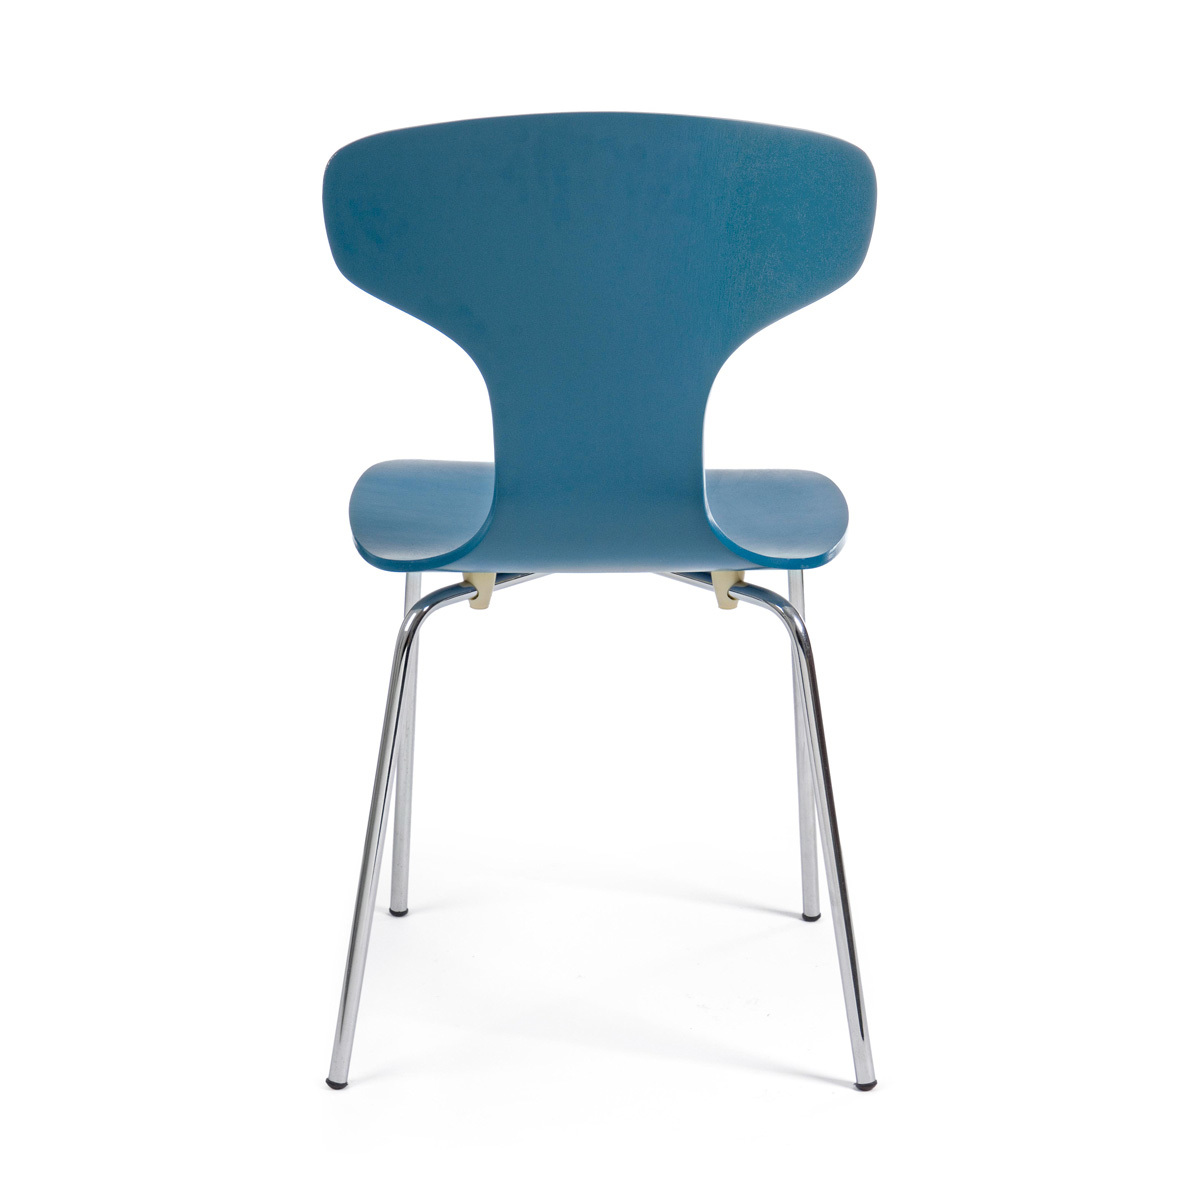 Photos 3: Bizzotto Chair in metal and wood - cobalt 0731624